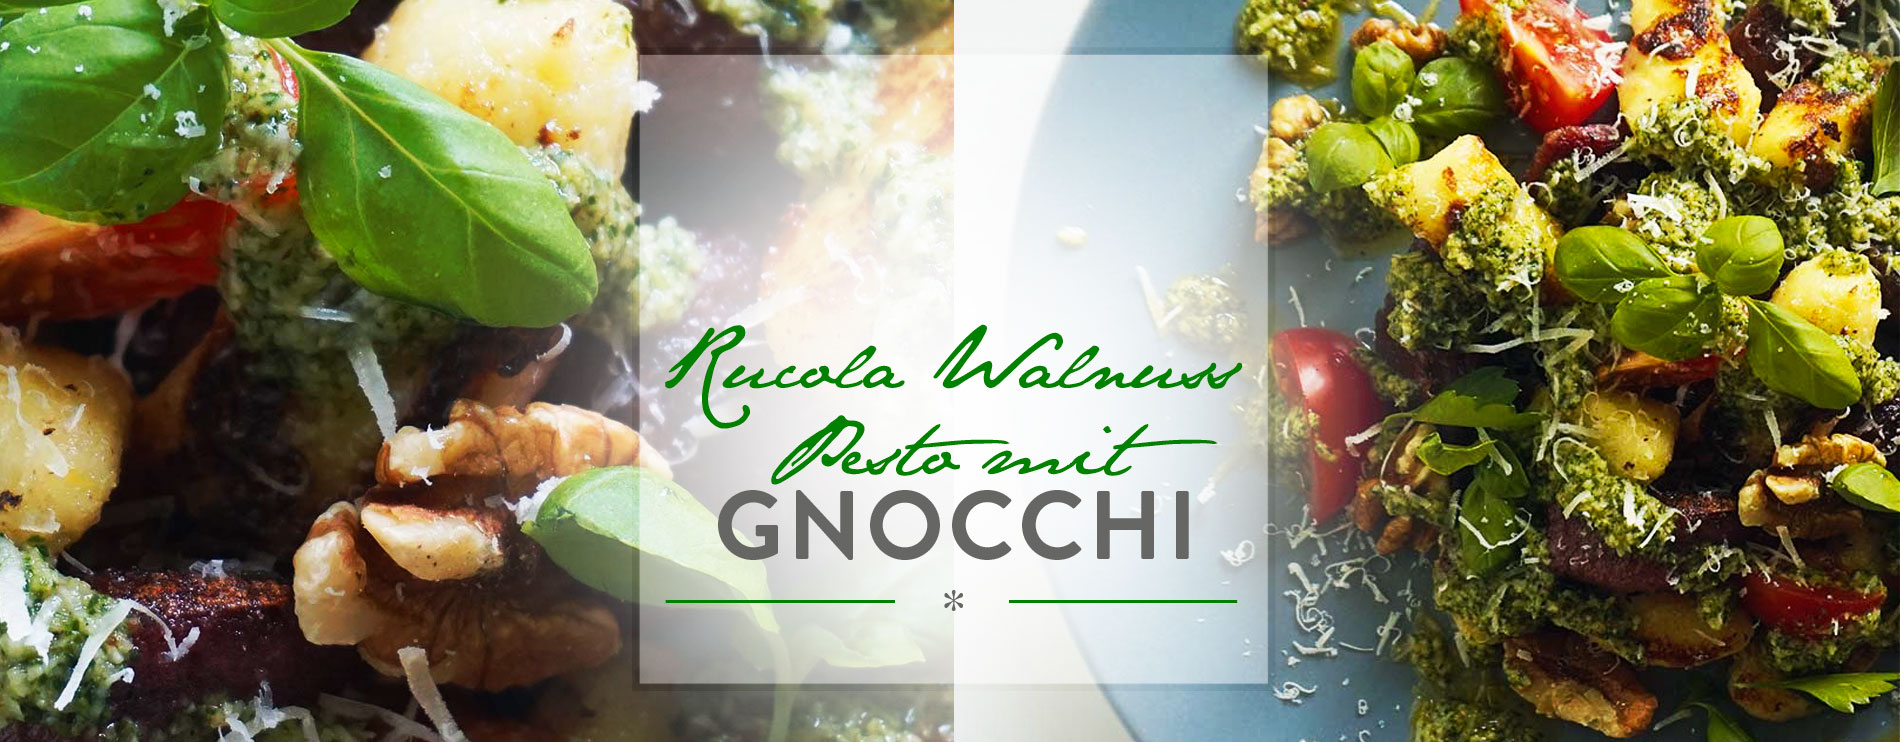 Header Rucola Walnuss Pesto mit Gnocchi